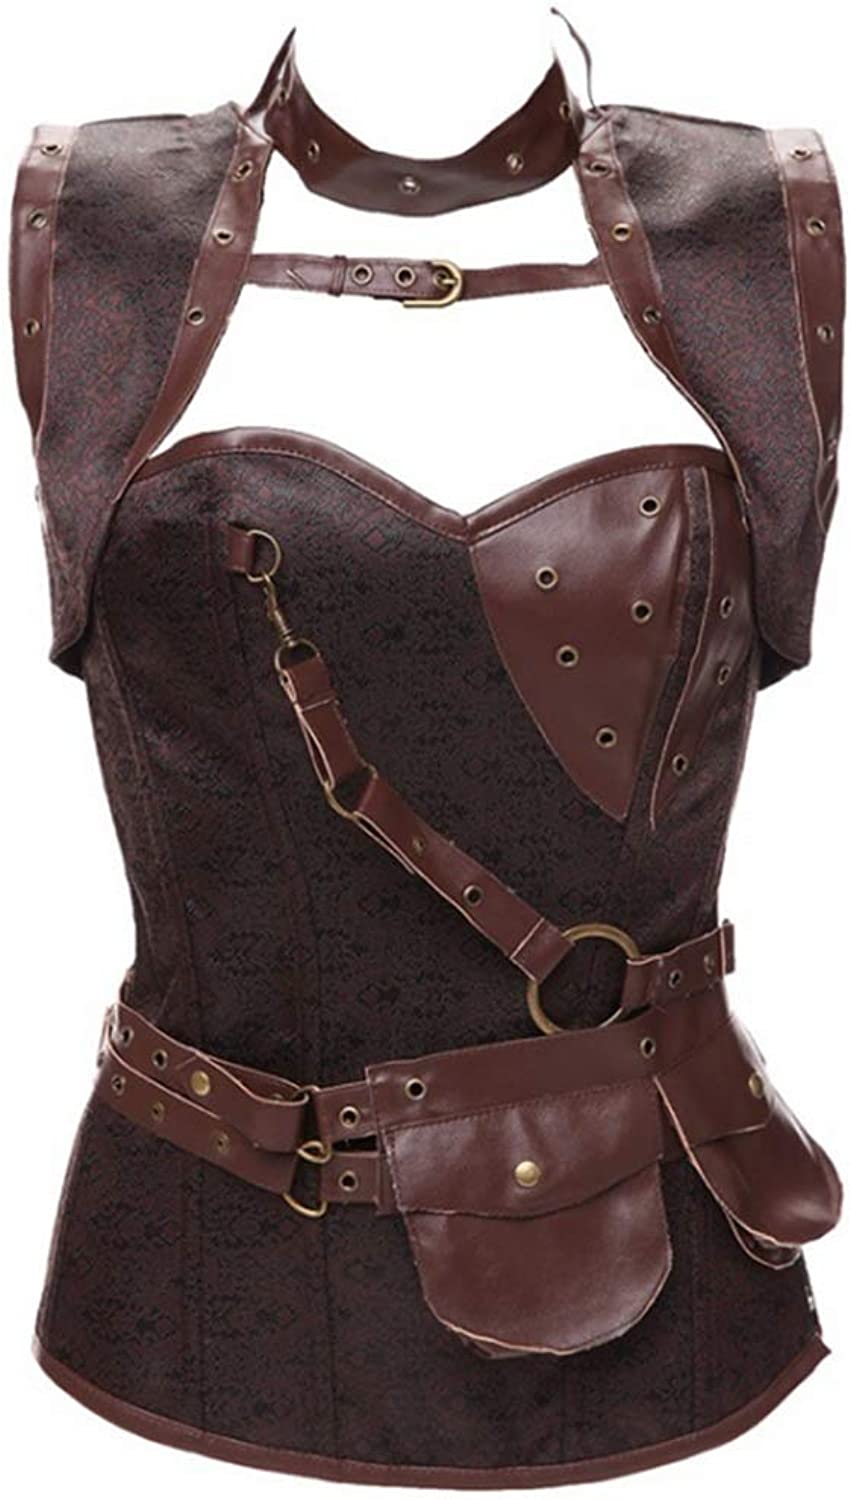 Waist Training Corset Women's Gothic Steampunk Steel Boned Waist Cincher Corset Vest Women Slimming Tummy Tank Top (color   Brown, Size   6XL)